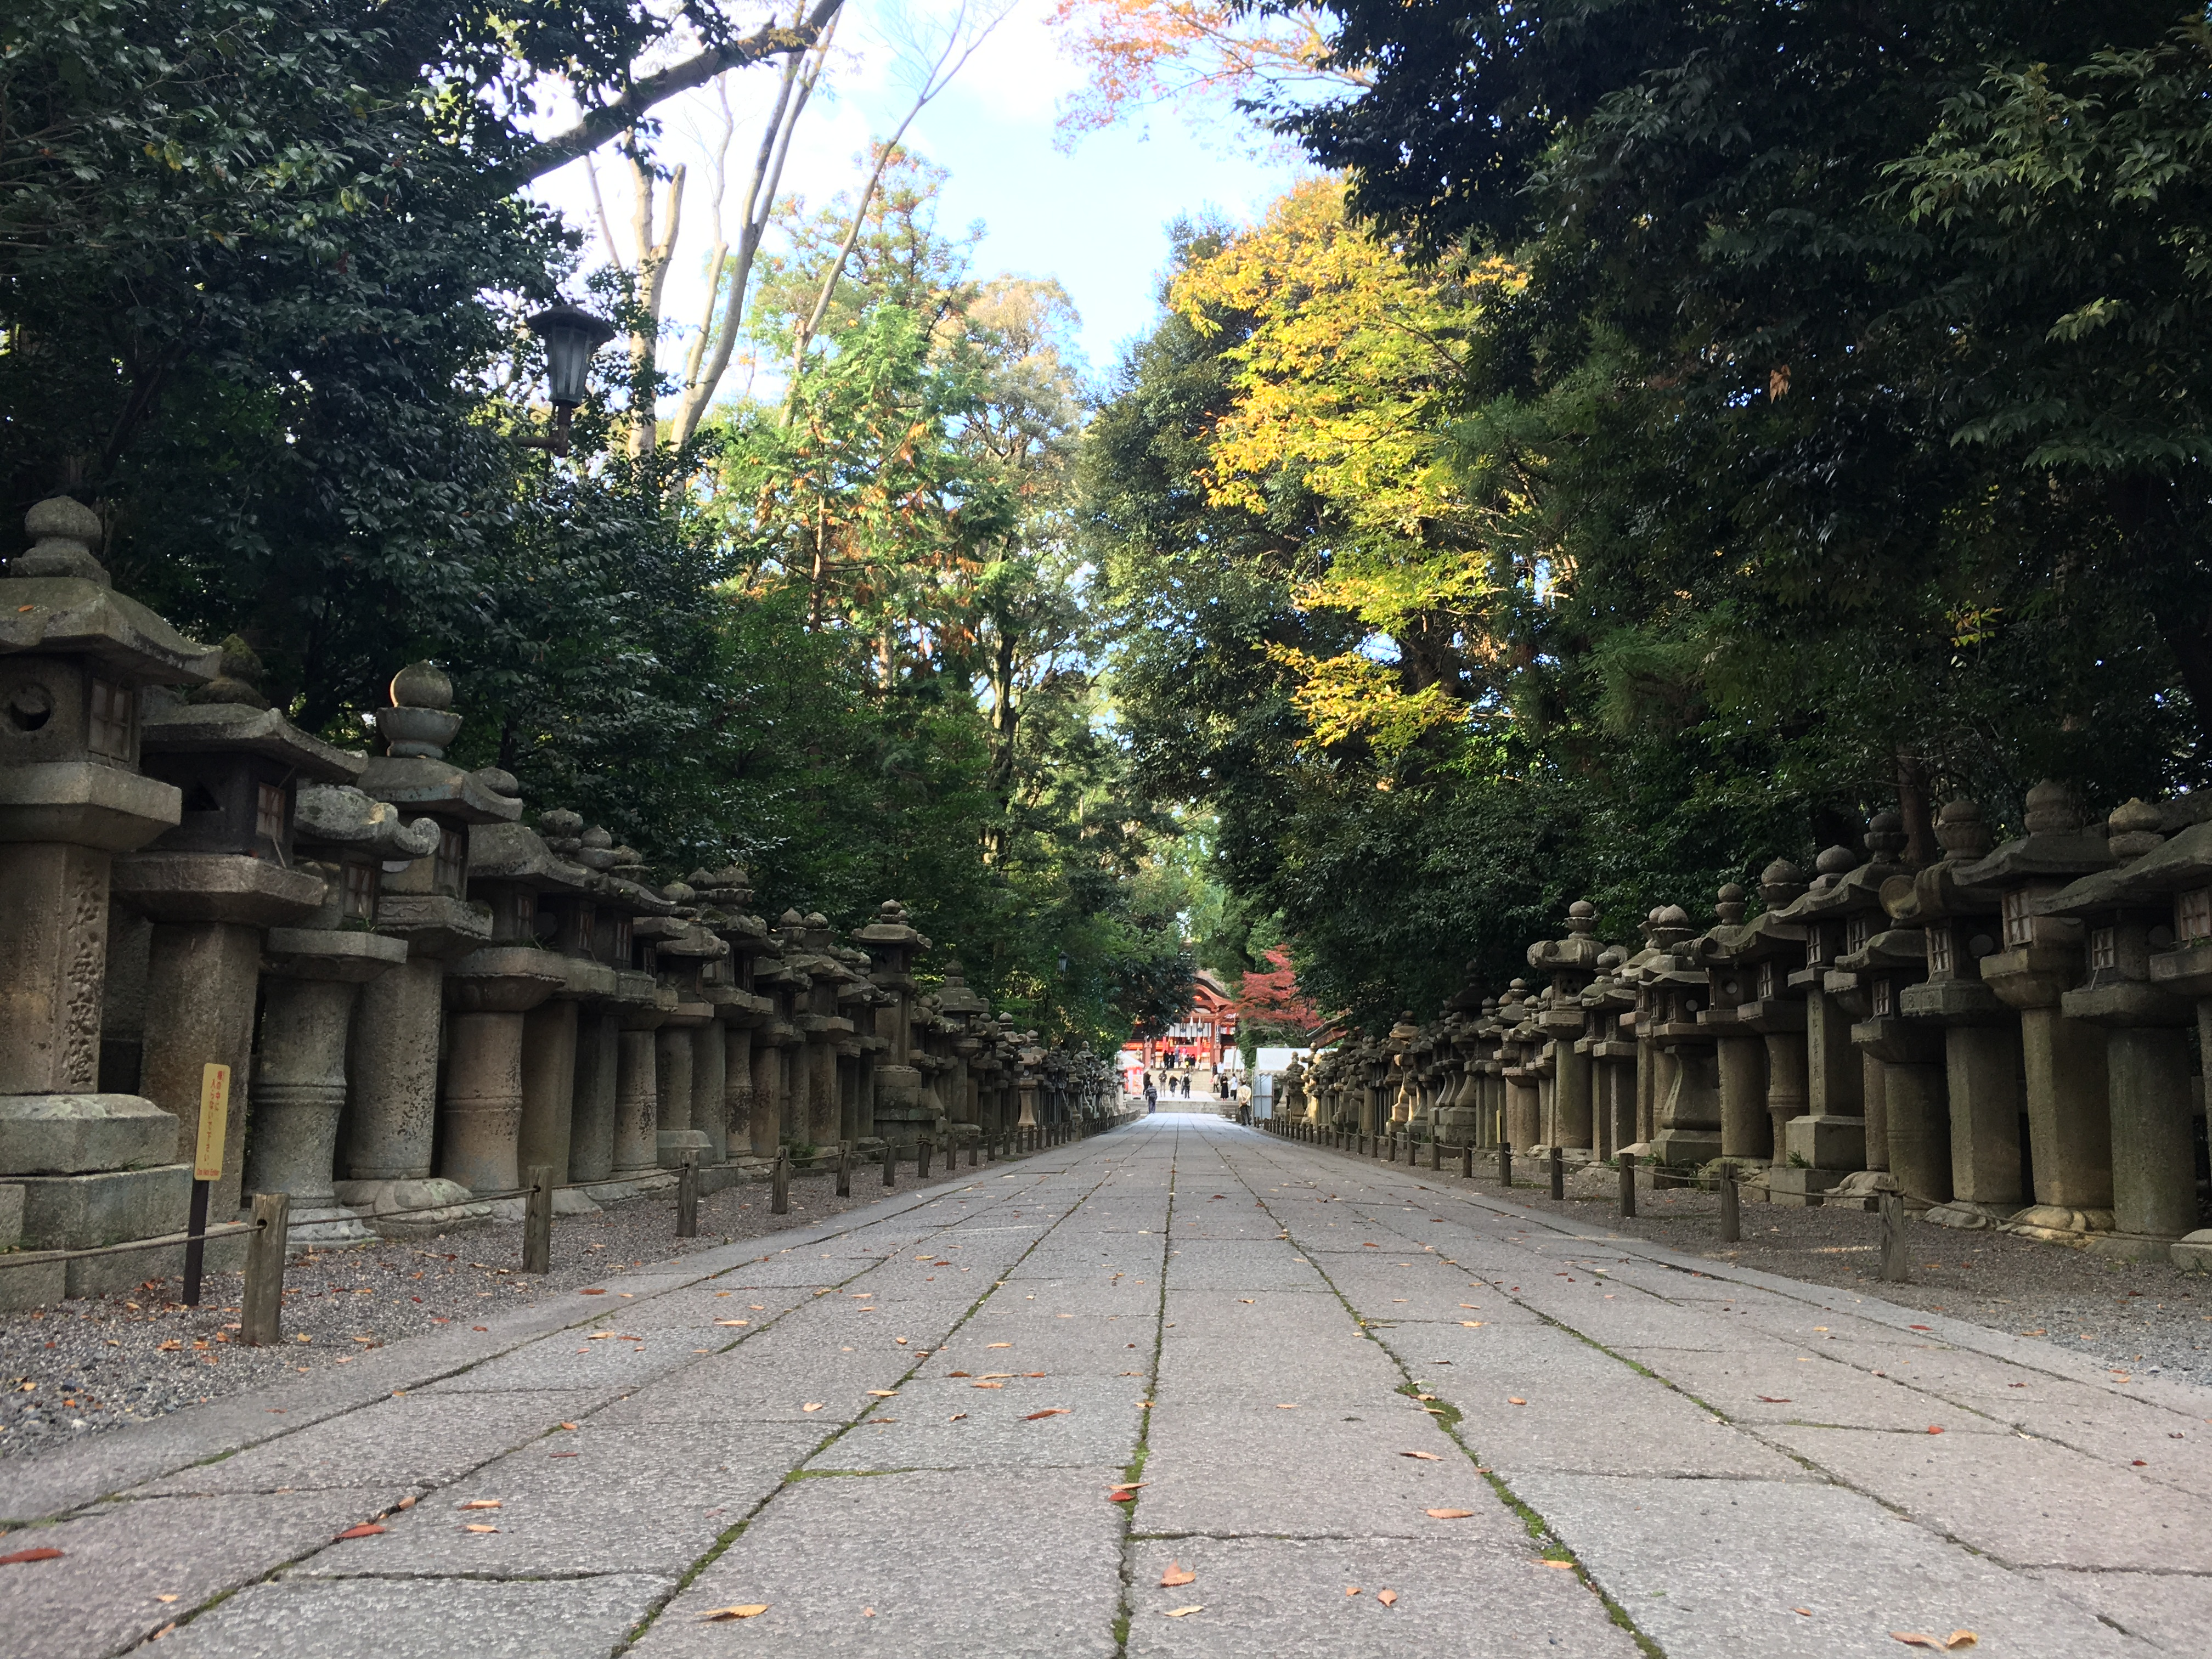 stone path on a fall day lined with Japanese stone lanterns